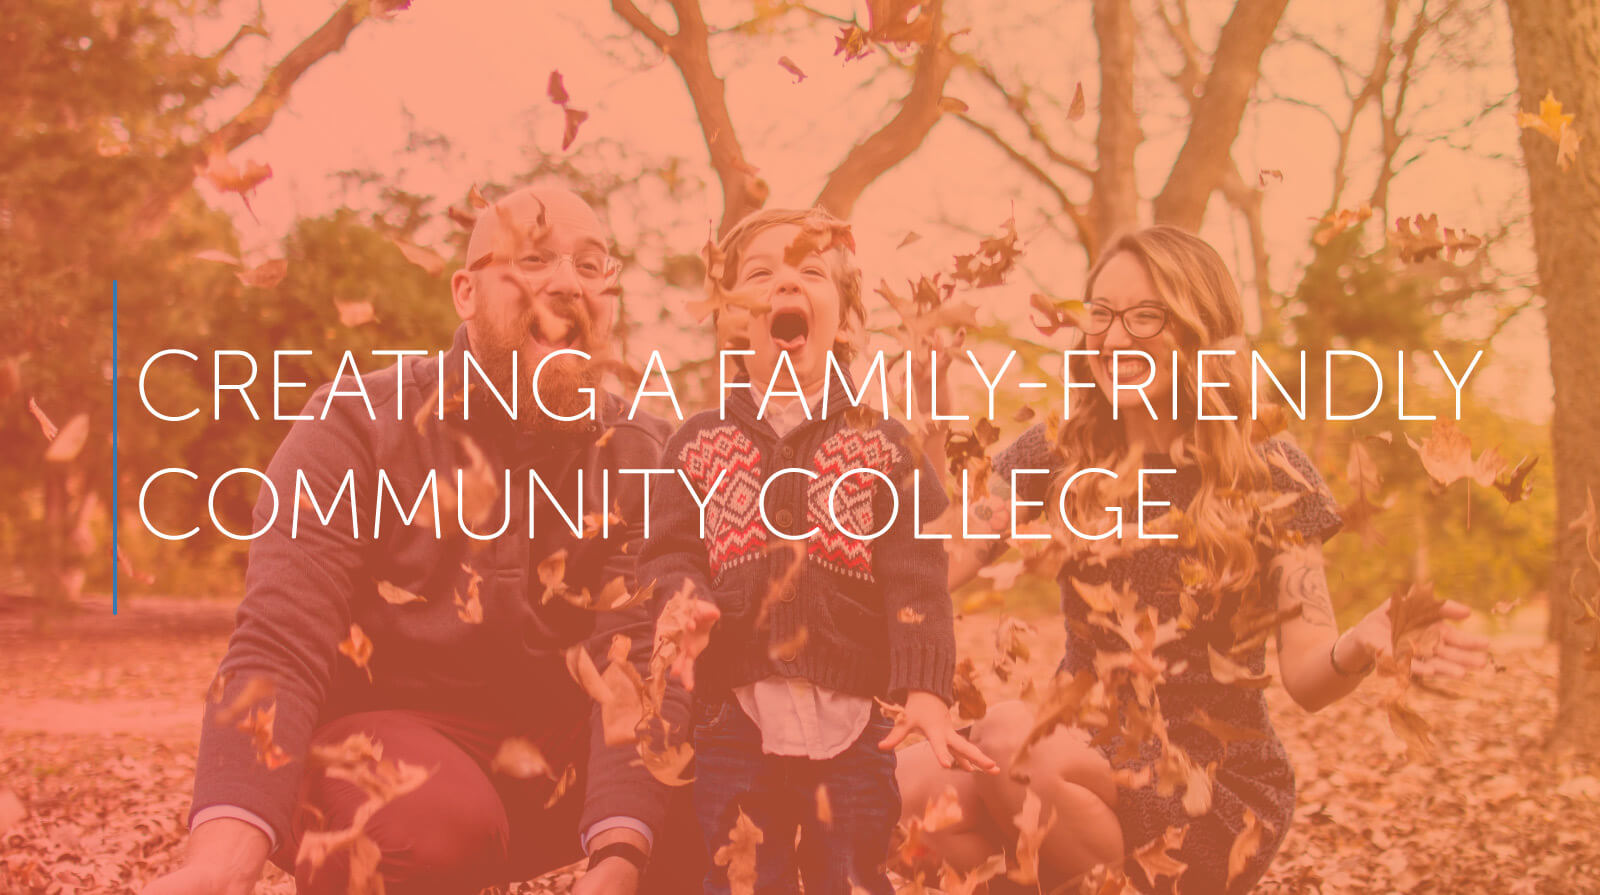 Creating a Family-Friendly Community College